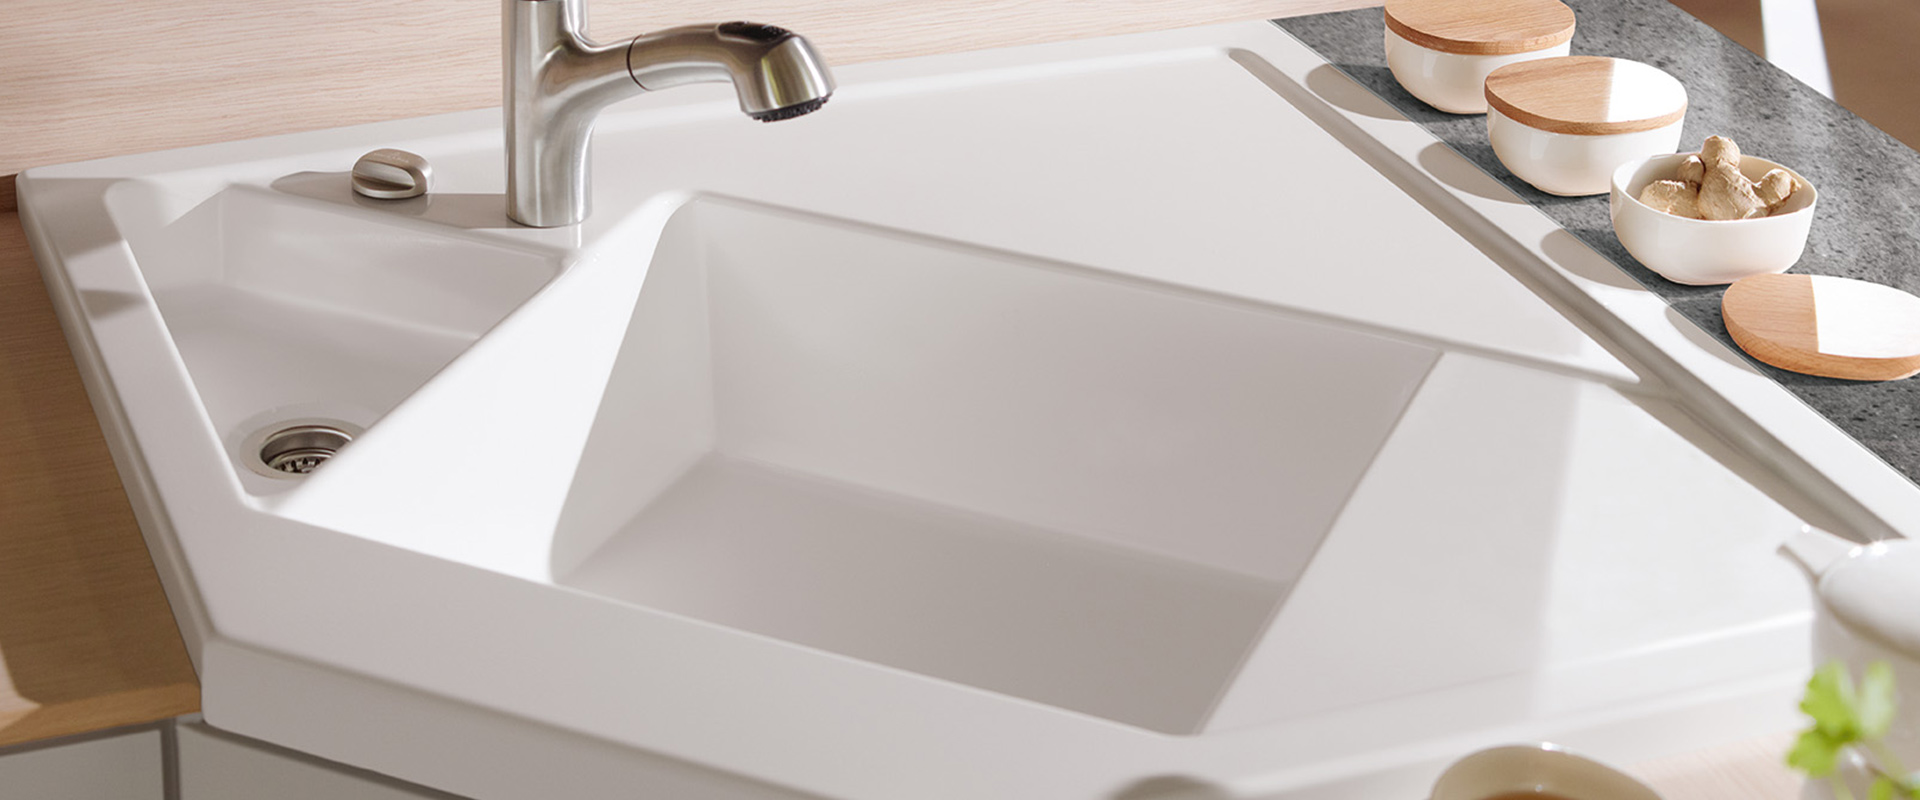 Tap Designs For Kitchens Design Your Kitchen With Villeroy Boch